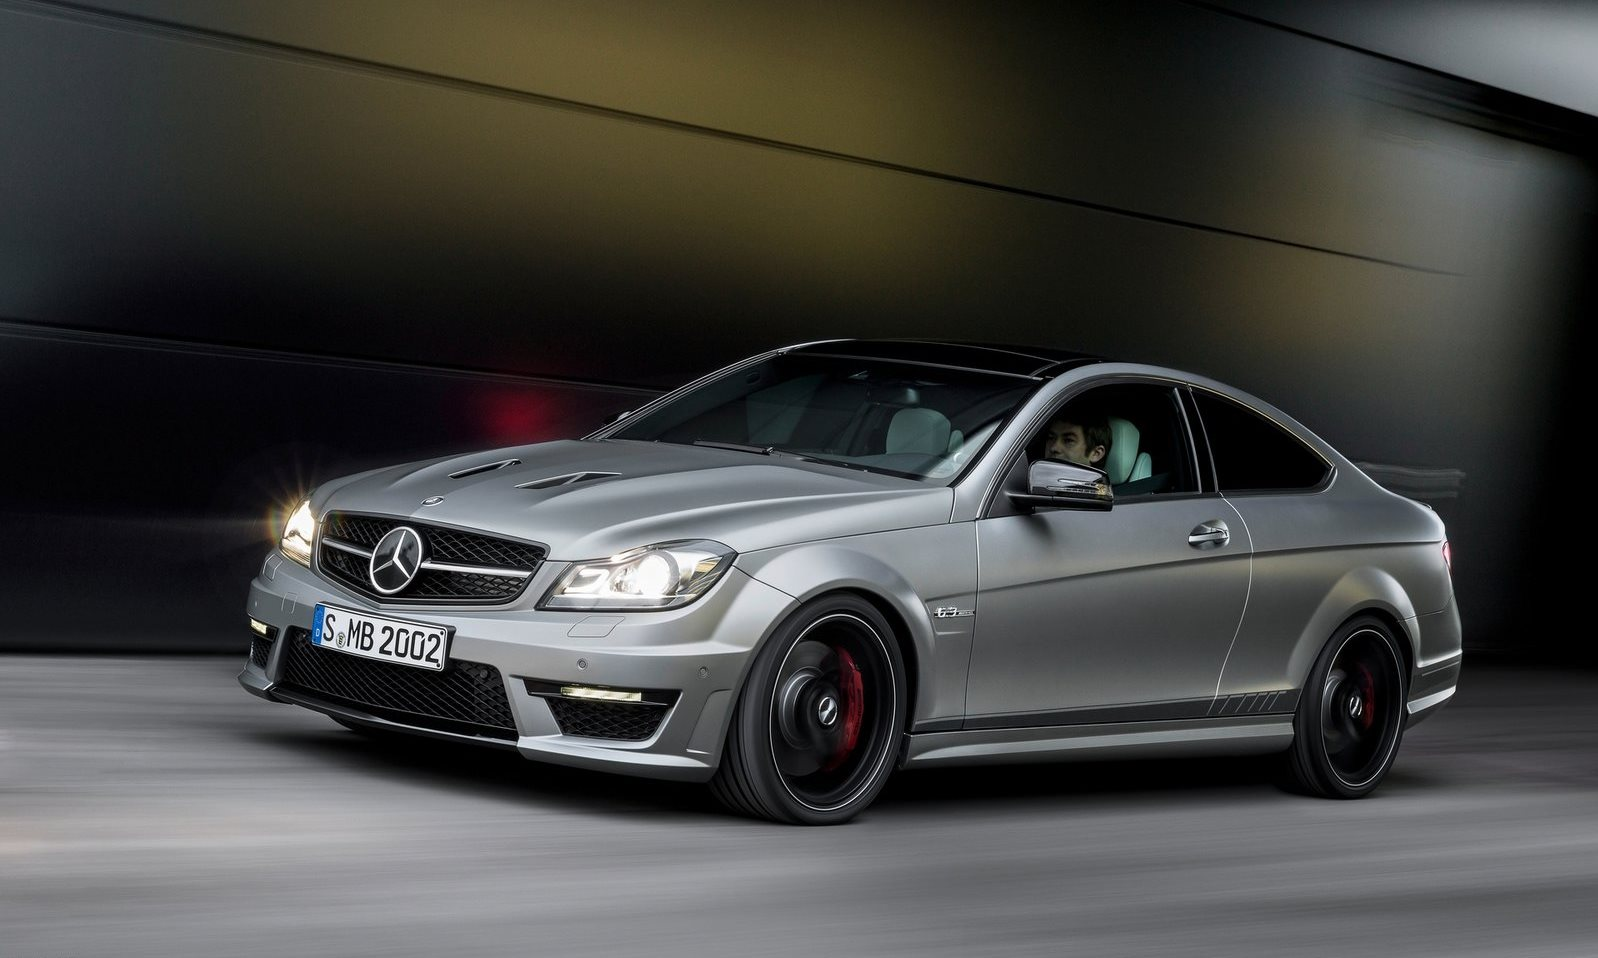 Mercedes-AMG C63 Edition 507 Coupe